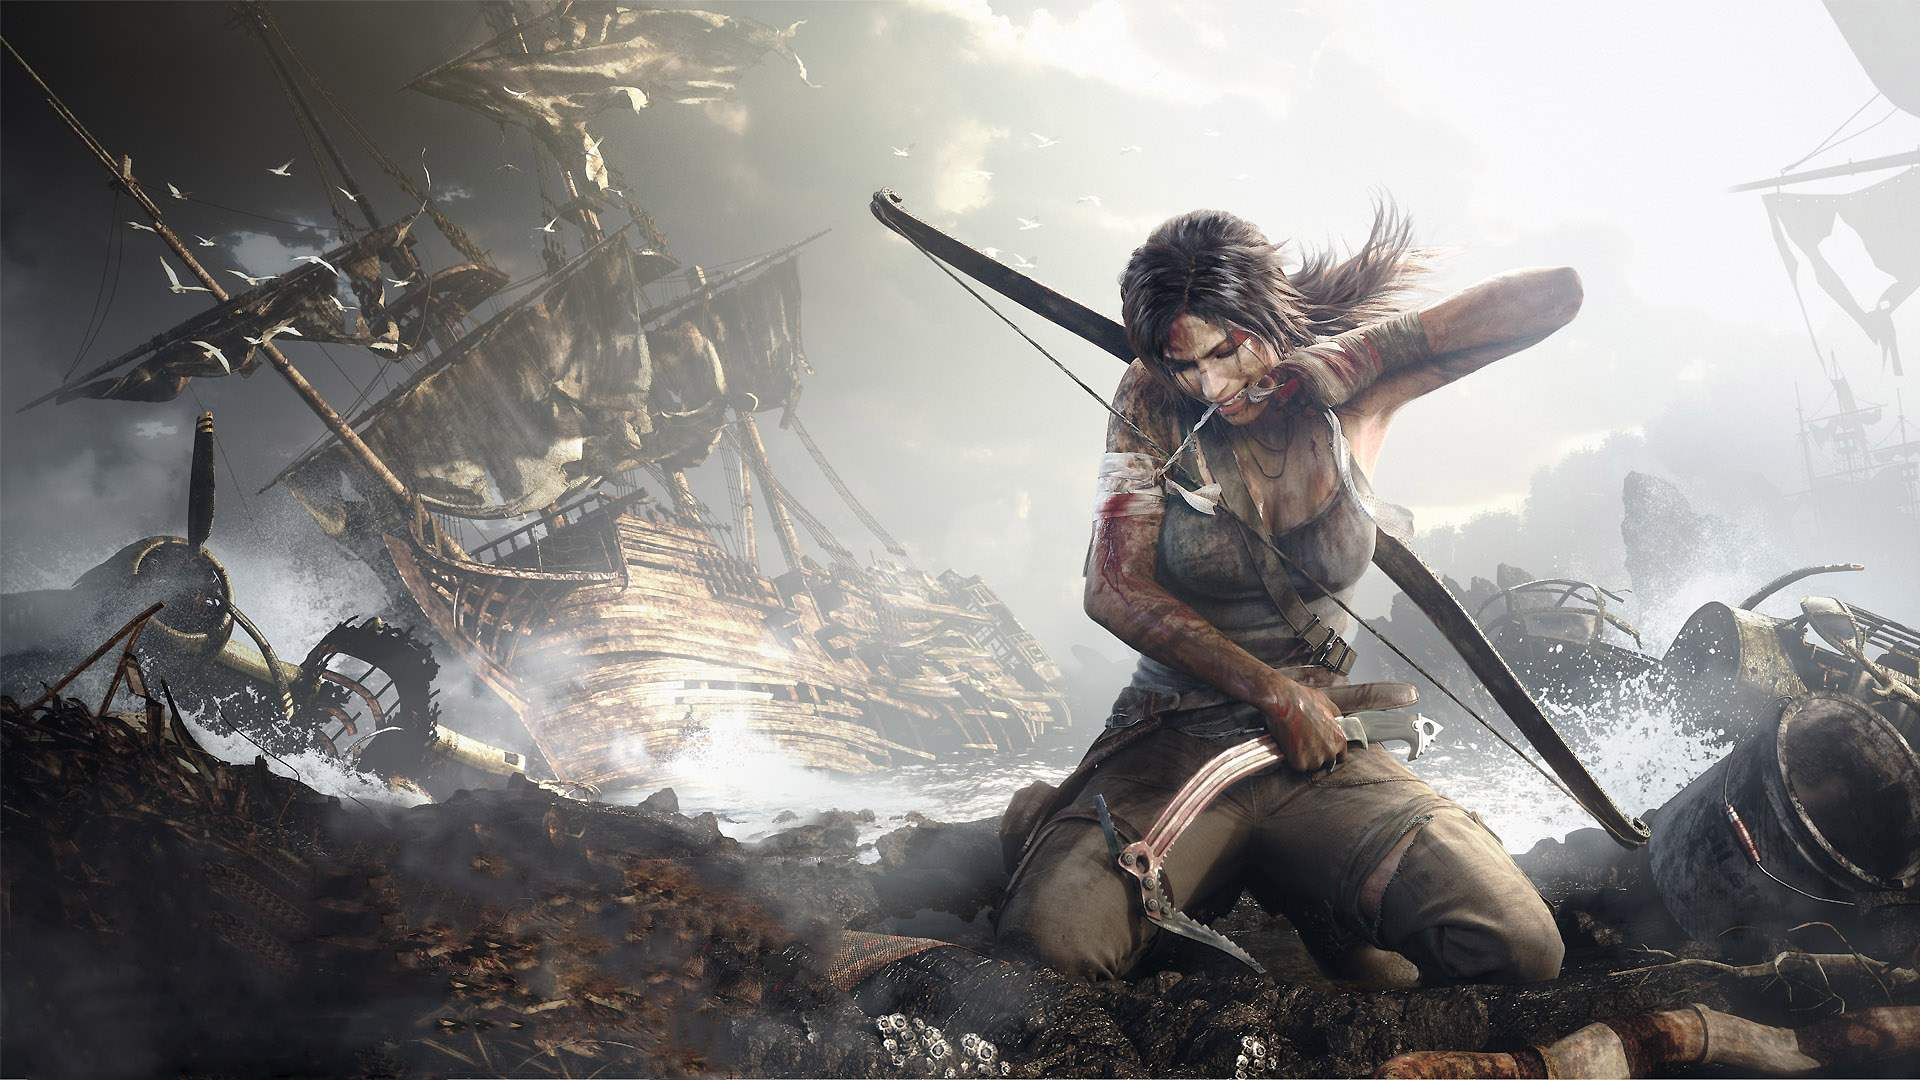 wallpapersxl-lara-croft-shipwreck-tomb-raider-hd-240838-1920x1080